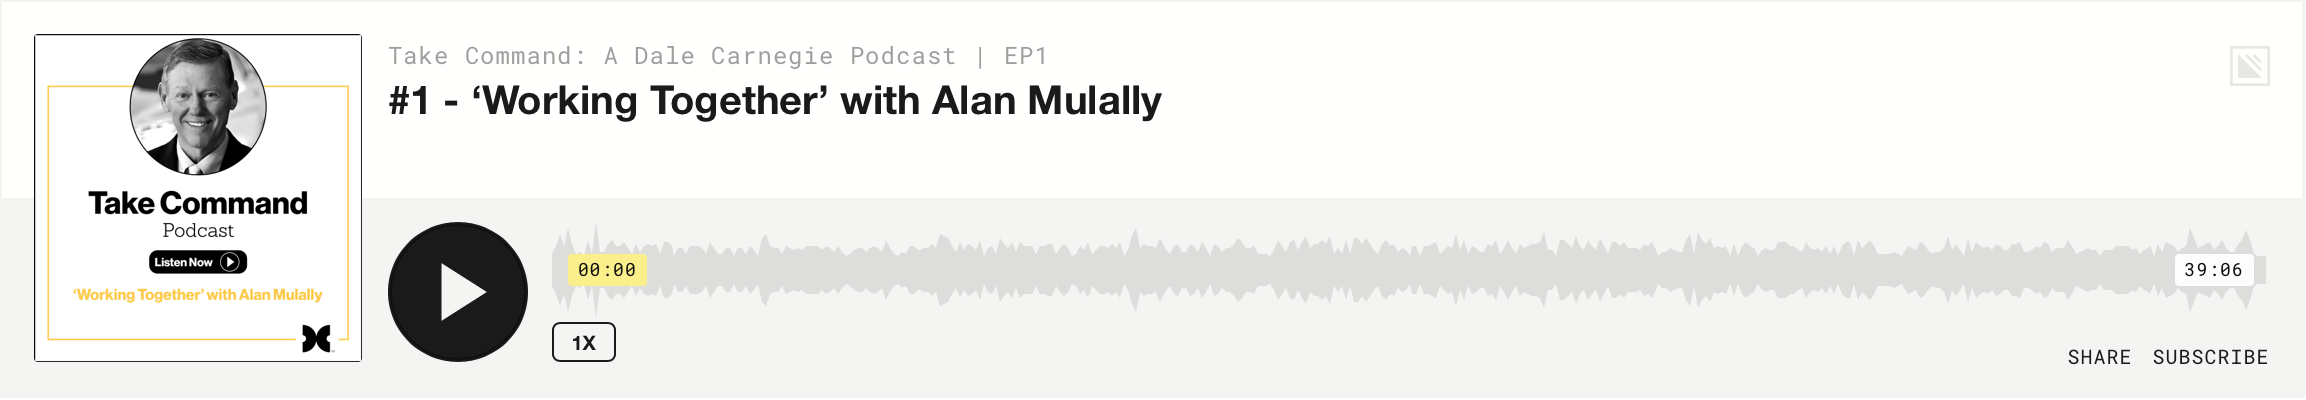 Take Command: Alan Mulally - Episode 1